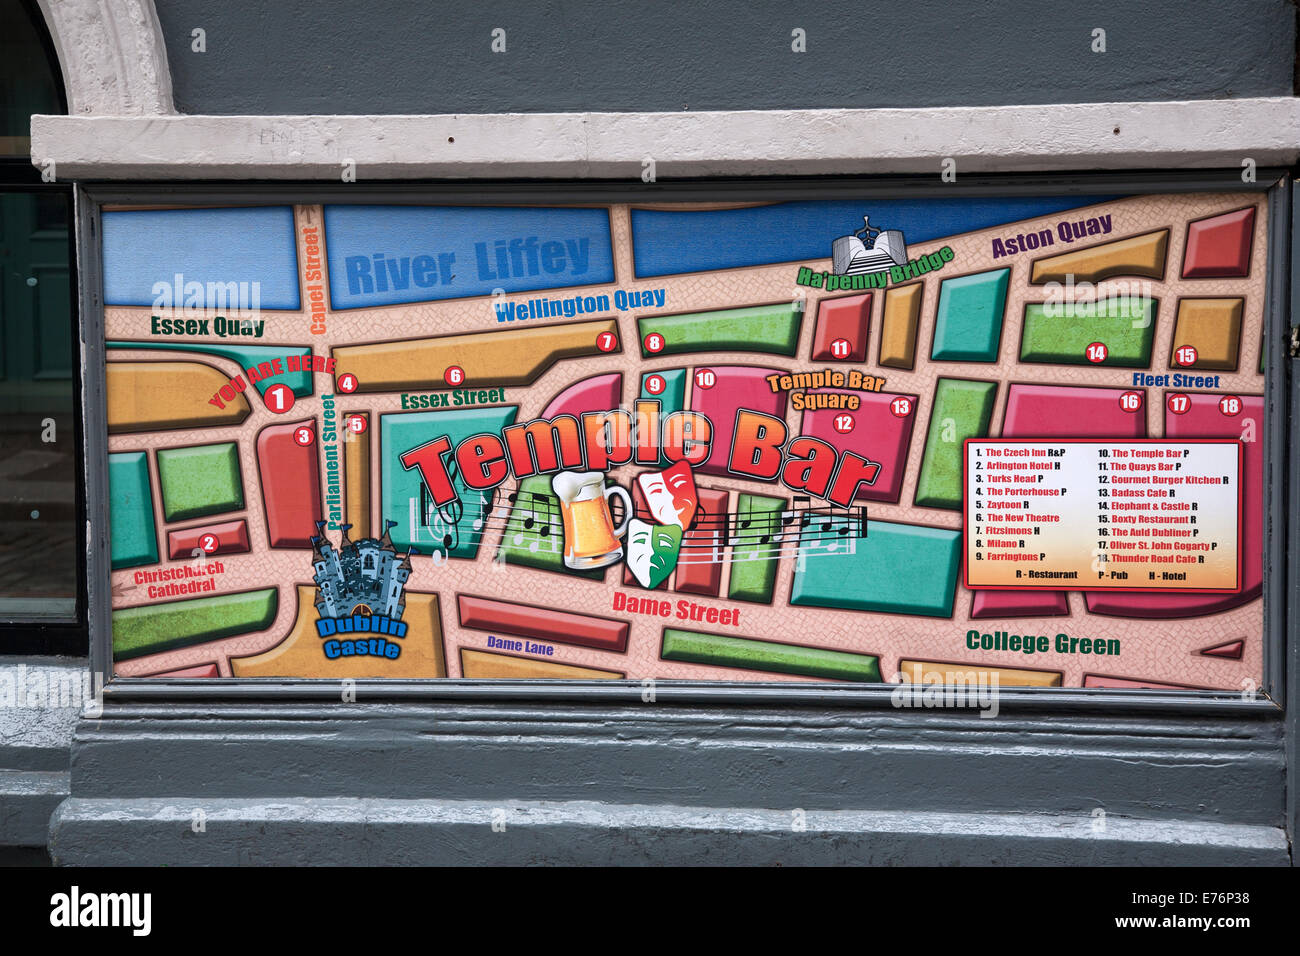 Map Of Dublin 6 Ireland.Temple Bar Map Dublin Ireland Stock Photo 73293116 Alamy